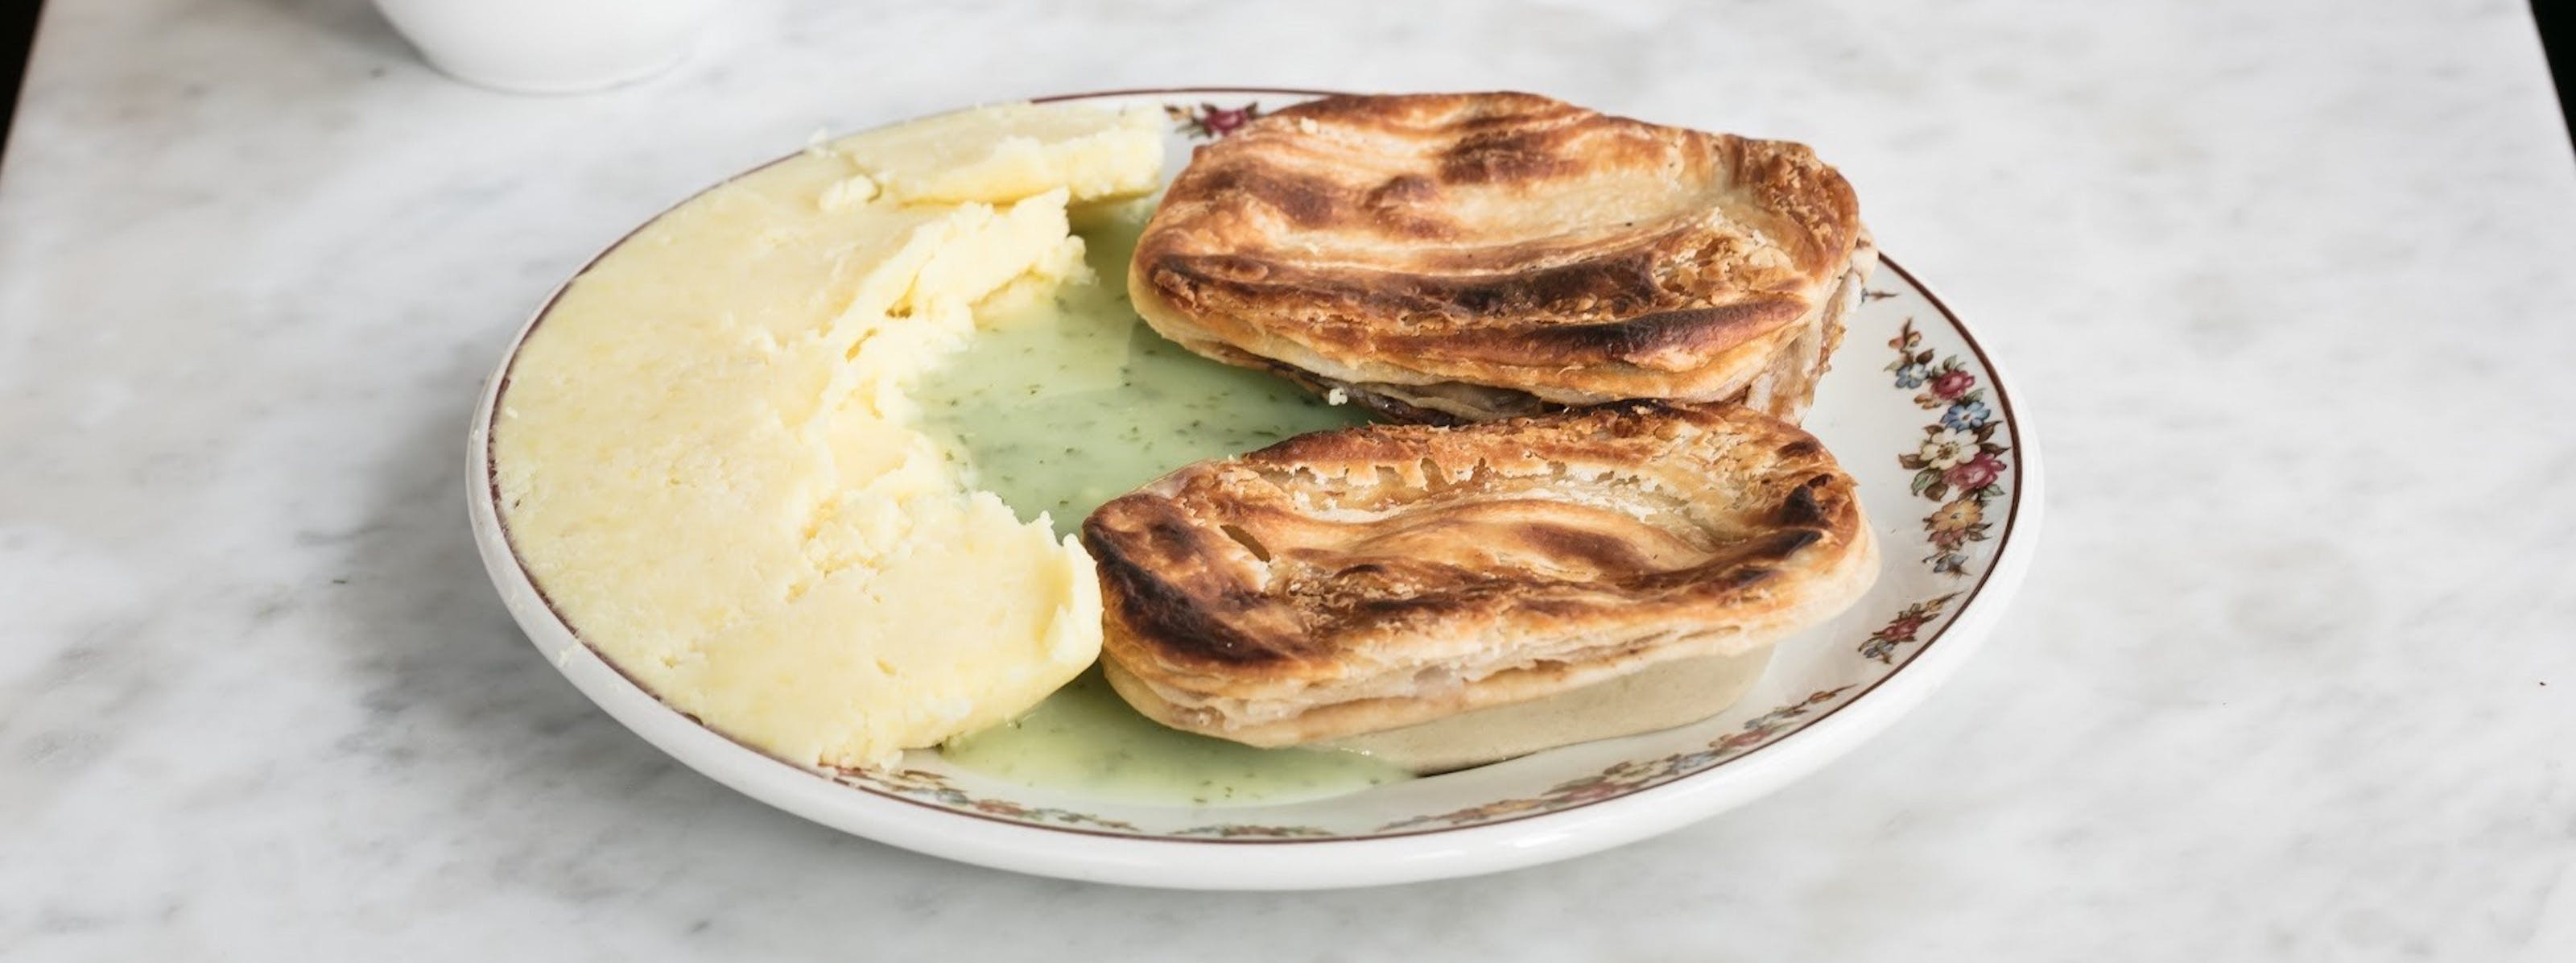 Where To Eat Pie In London - London - The Infatuation